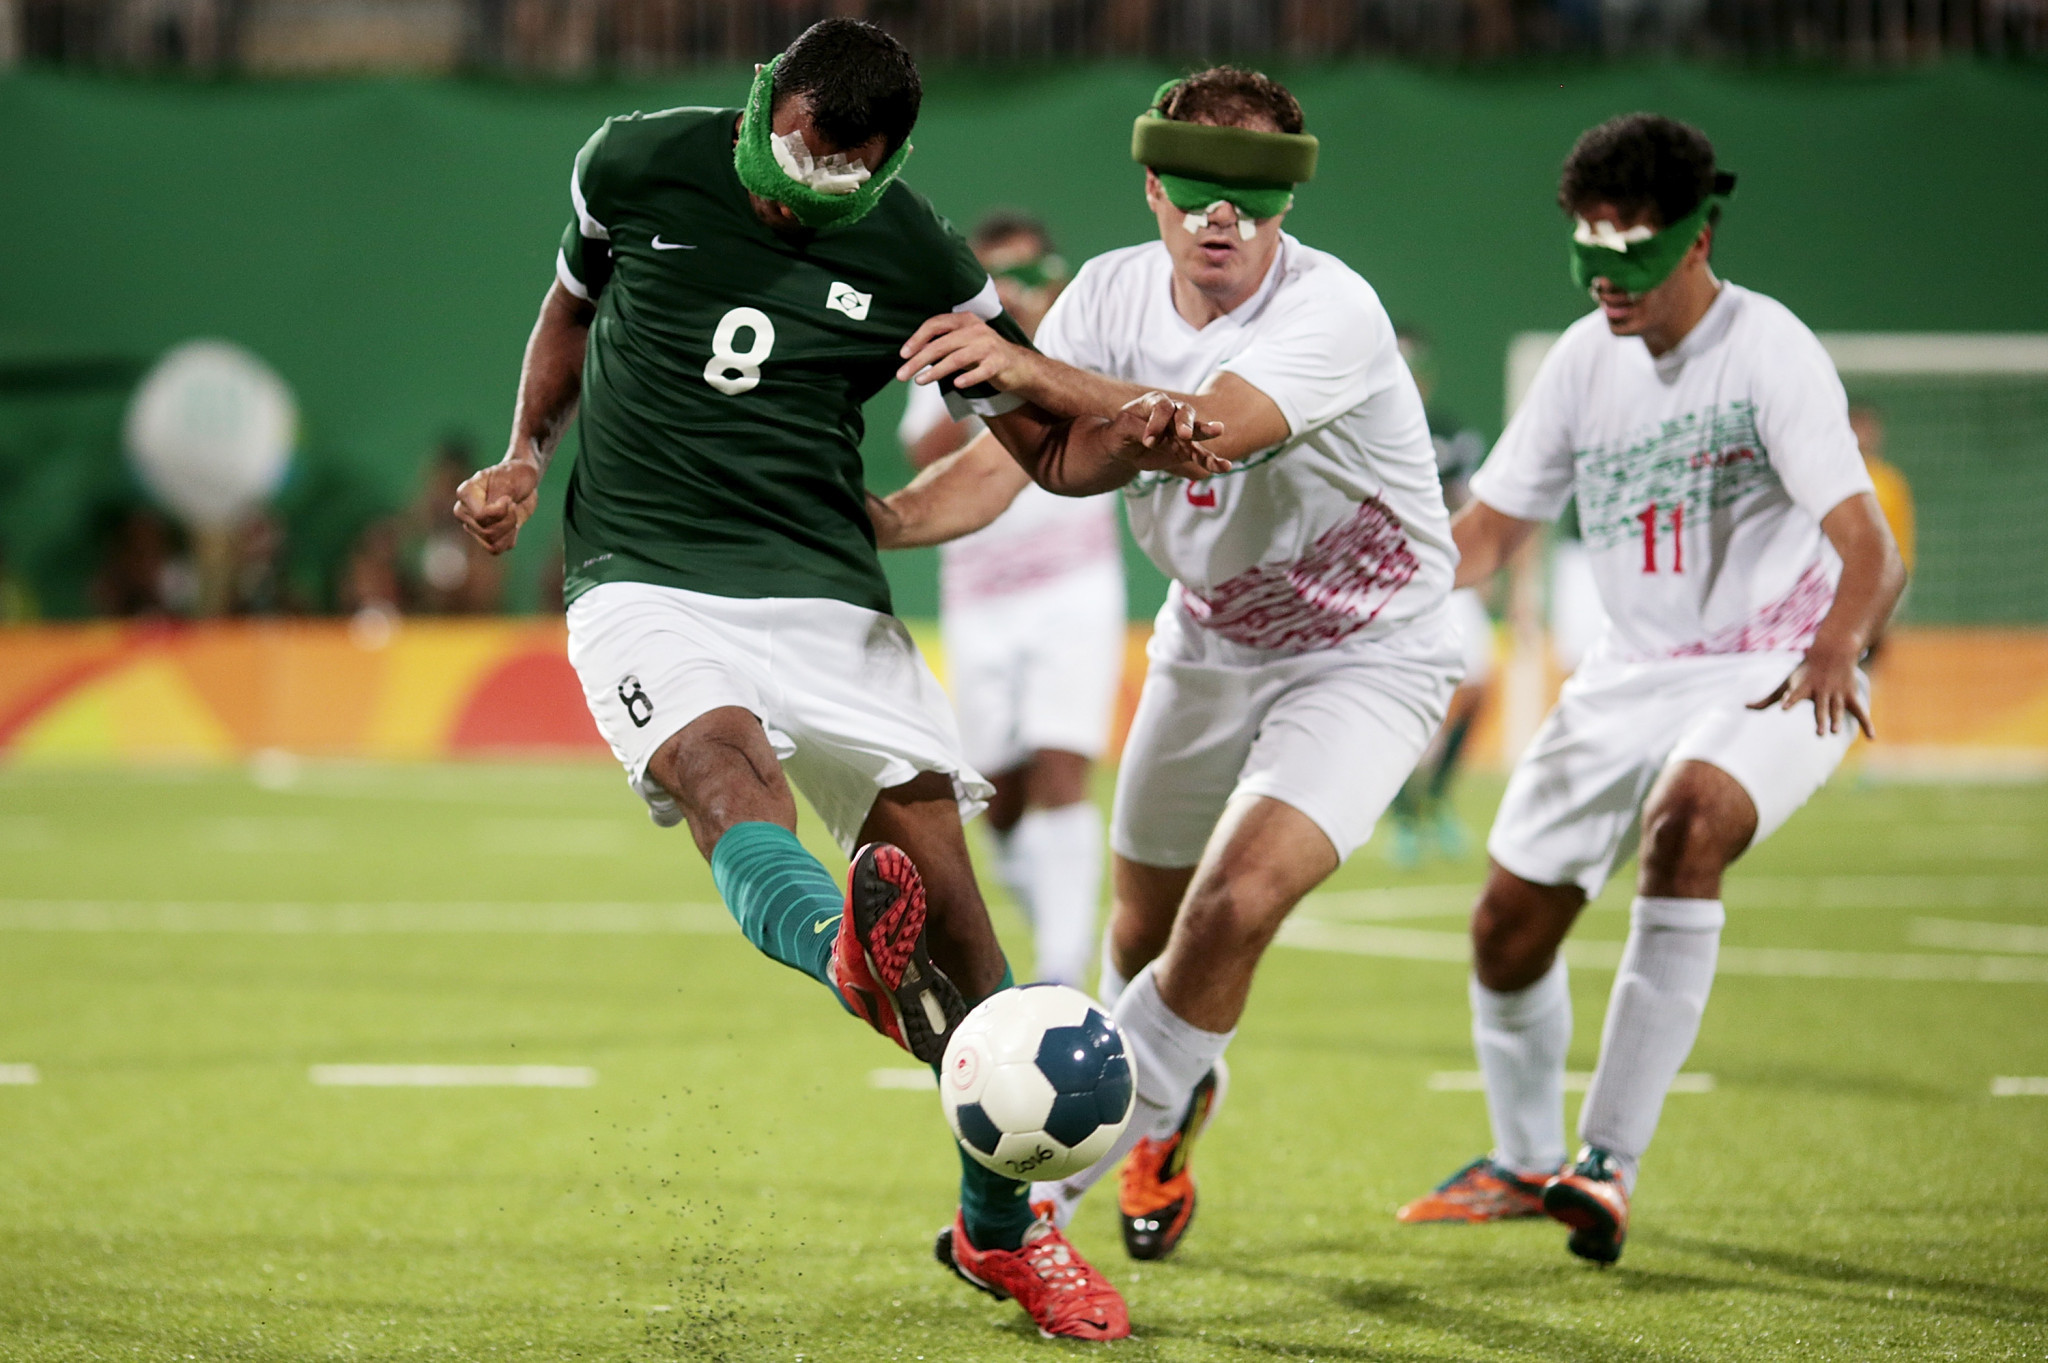 IBSA Football approves new concussion policy ahead of Tokyo 2020 Paralympics